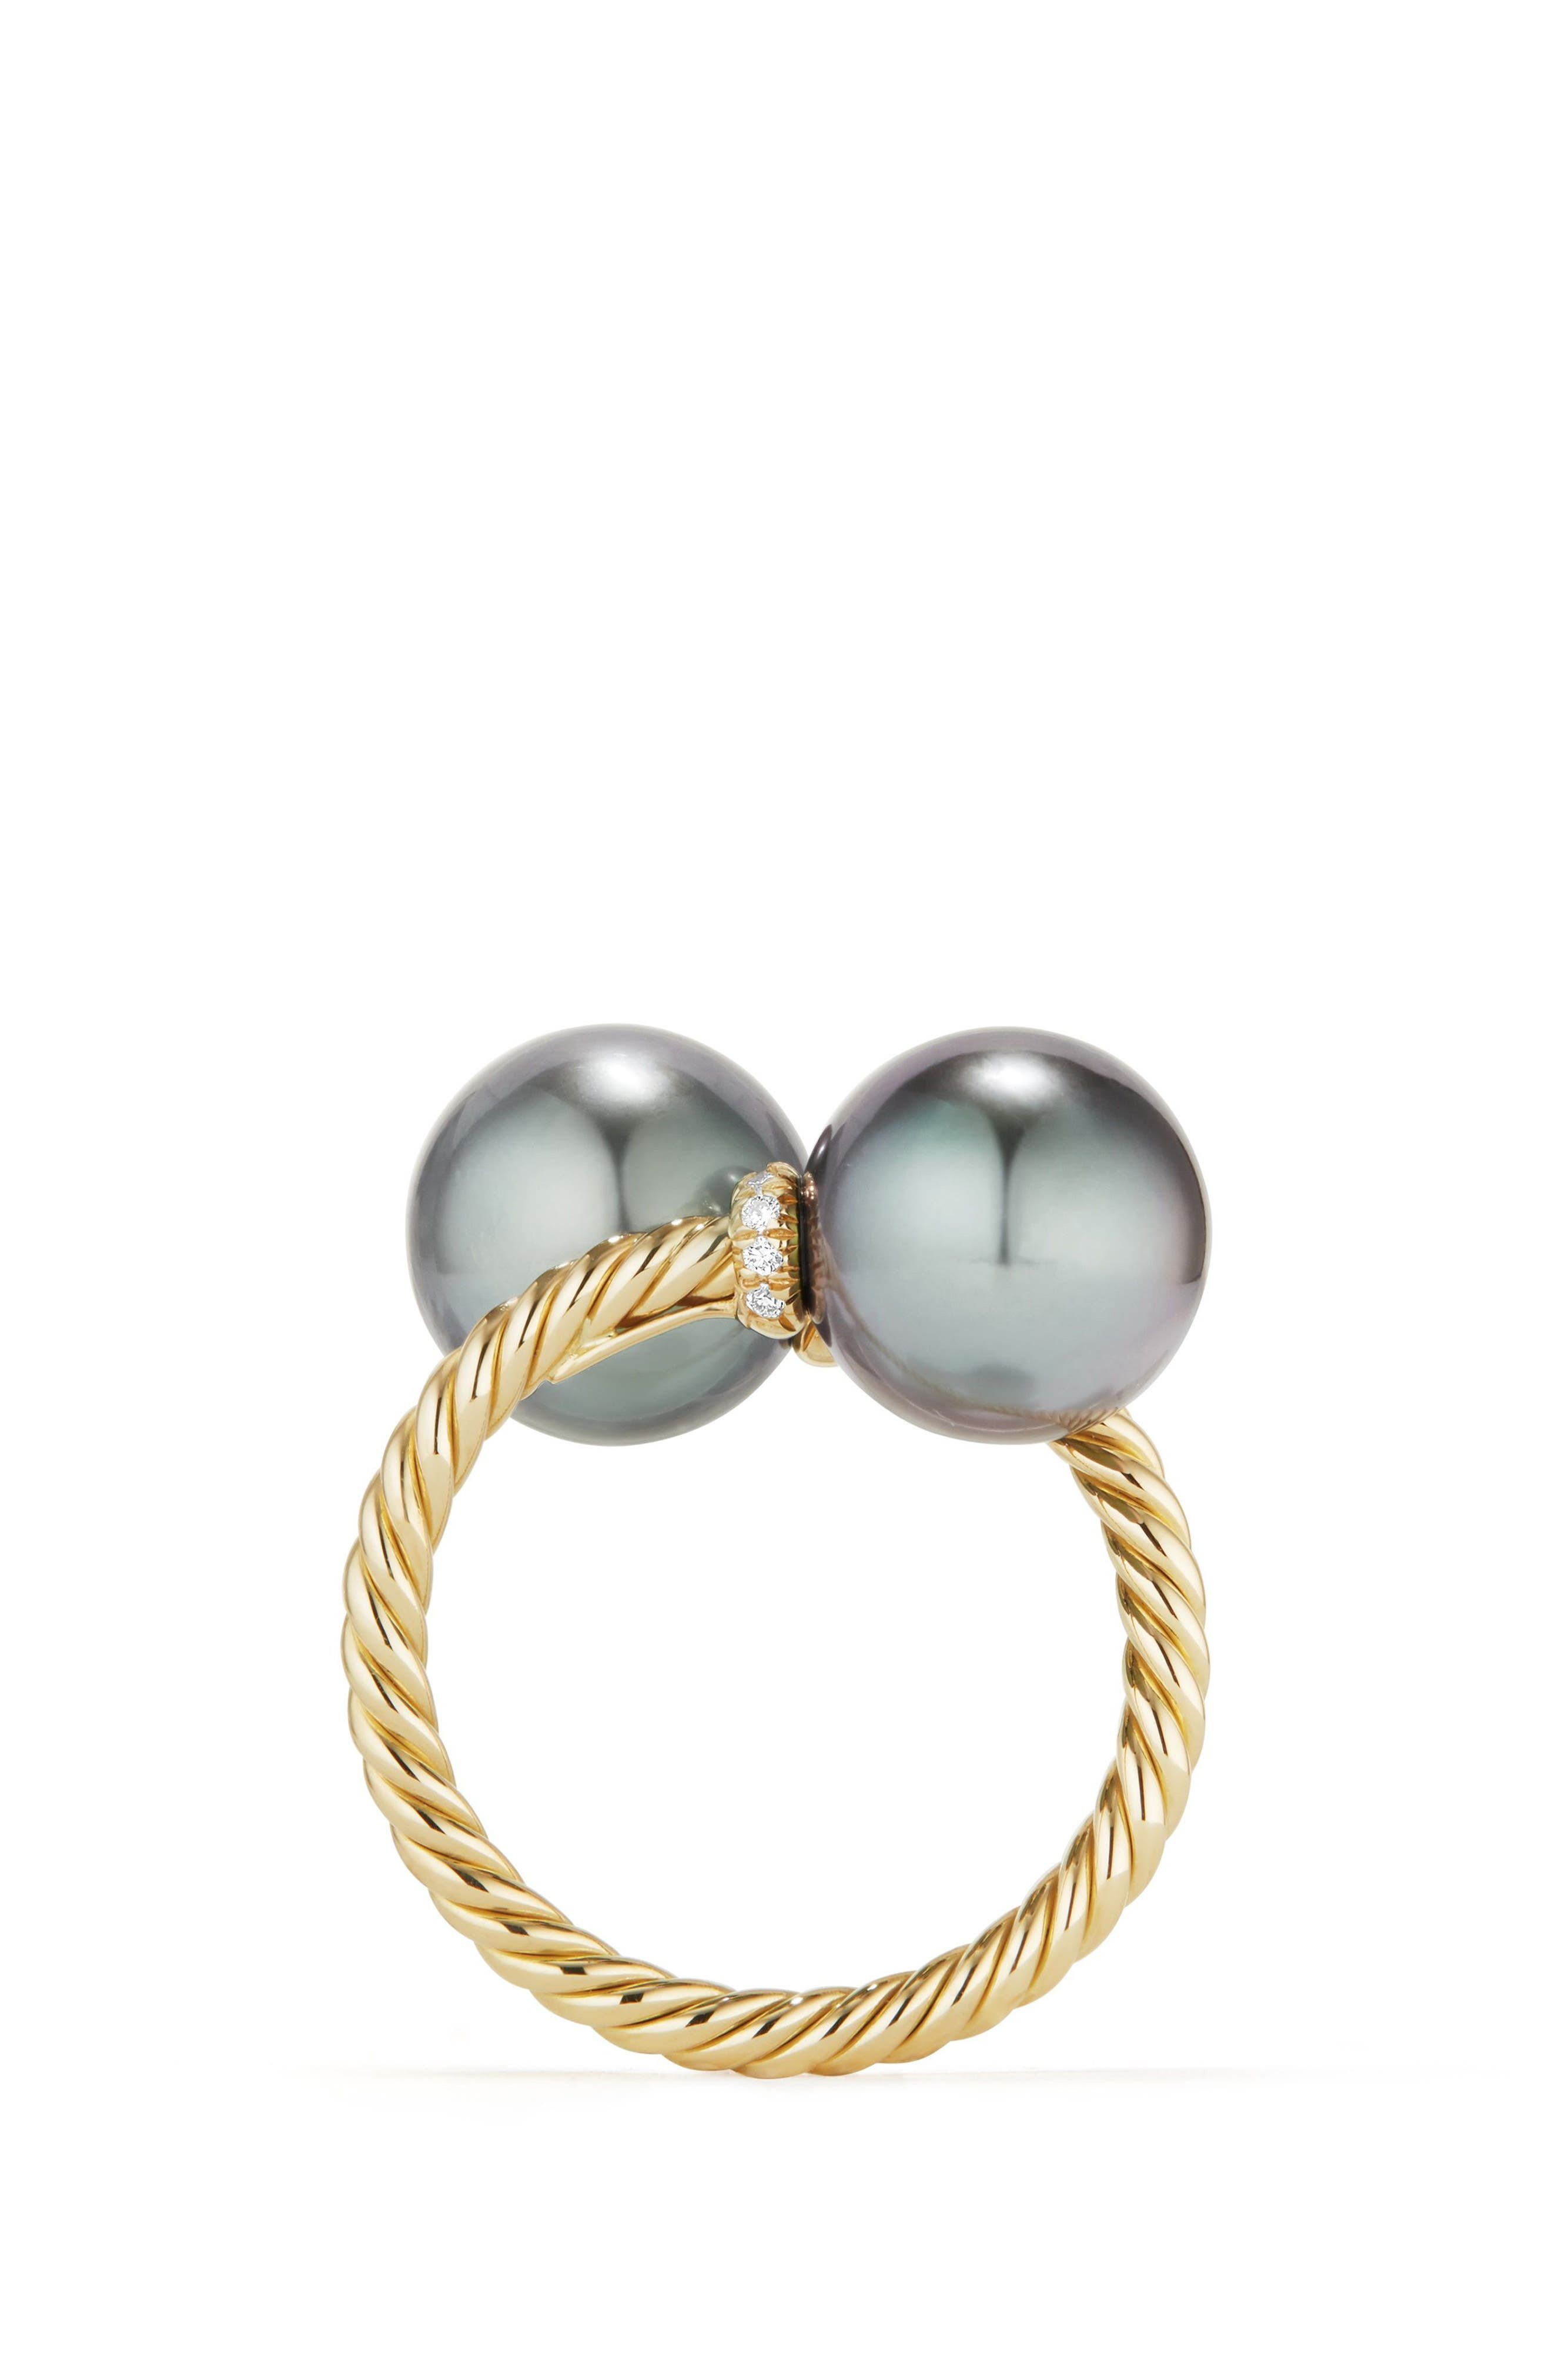 Solari Bypass Ring with Diamond in 18K Gold,                             Alternate thumbnail 4, color,                             GOLD/ DIAMOND/ GREY PEARL